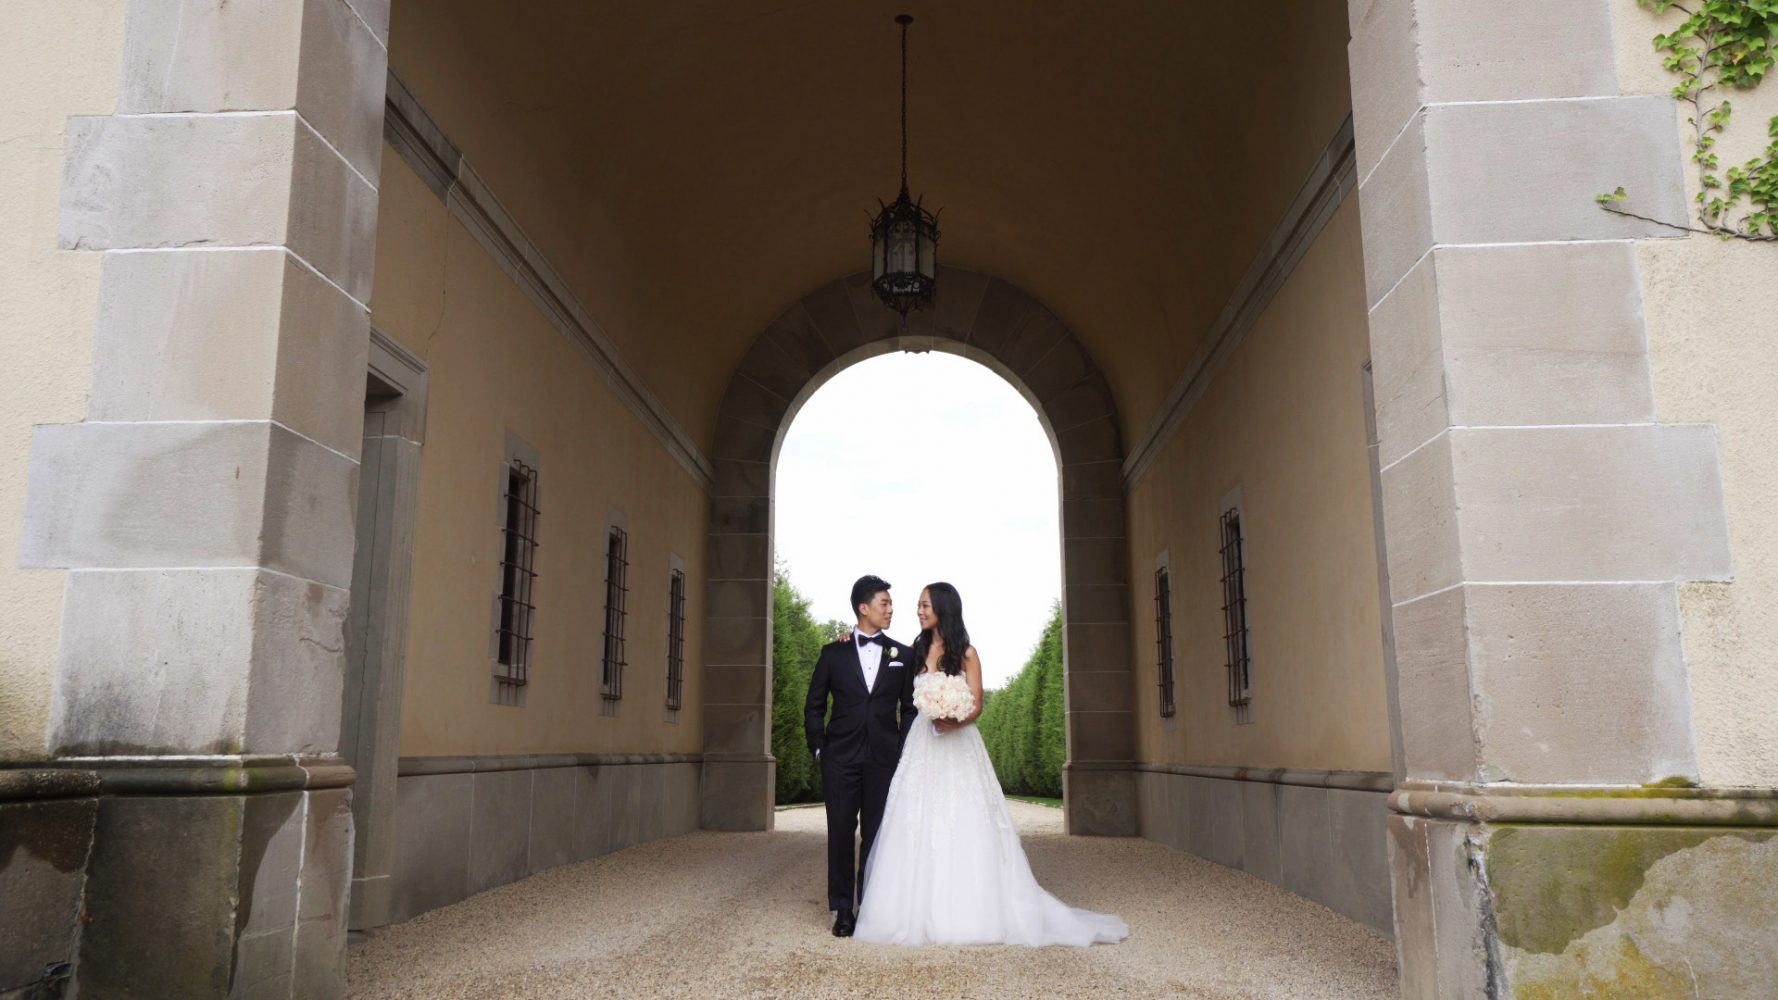 Nicole + Michael | Huntington, New York | Oheka Castle